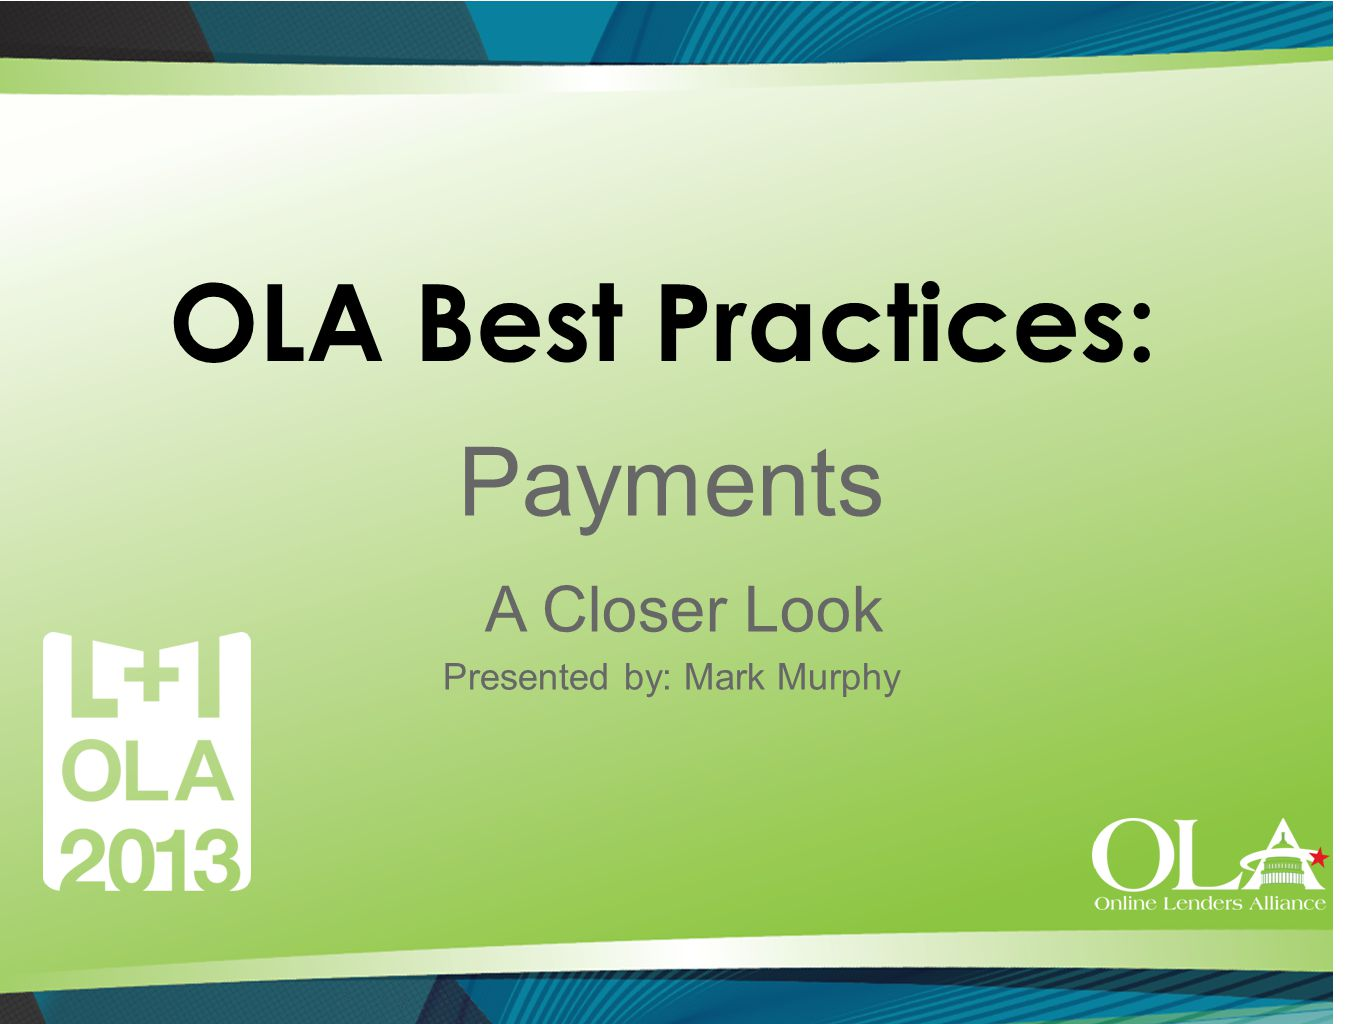 OLA Best Practices: Payments A Closer Look Presented by: Mark Murphy